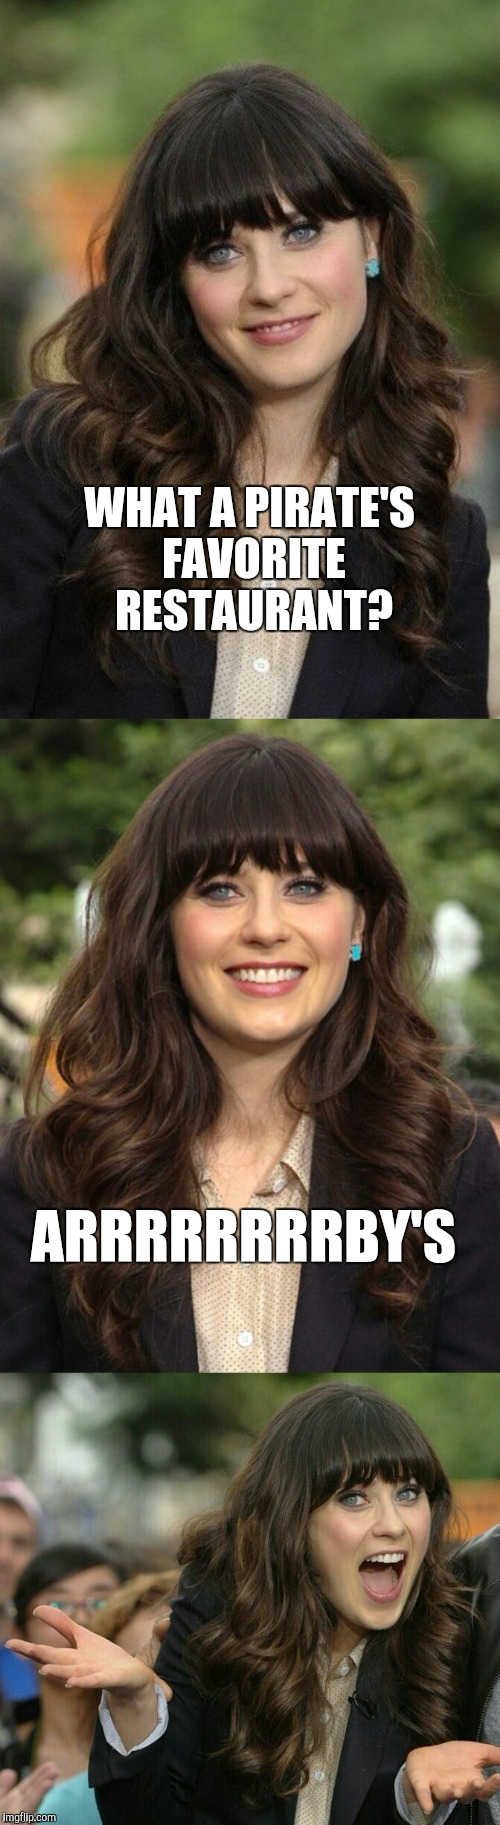 Zooey Deschanel joke template | WHAT A PIRATE'S FAVORITE RESTAURANT? ARRRRRRRRBY'S | image tagged in zooey deschanel joke template,jbmemegeek,pirates,bad puns,zooey deschanel | made w/ Imgflip meme maker